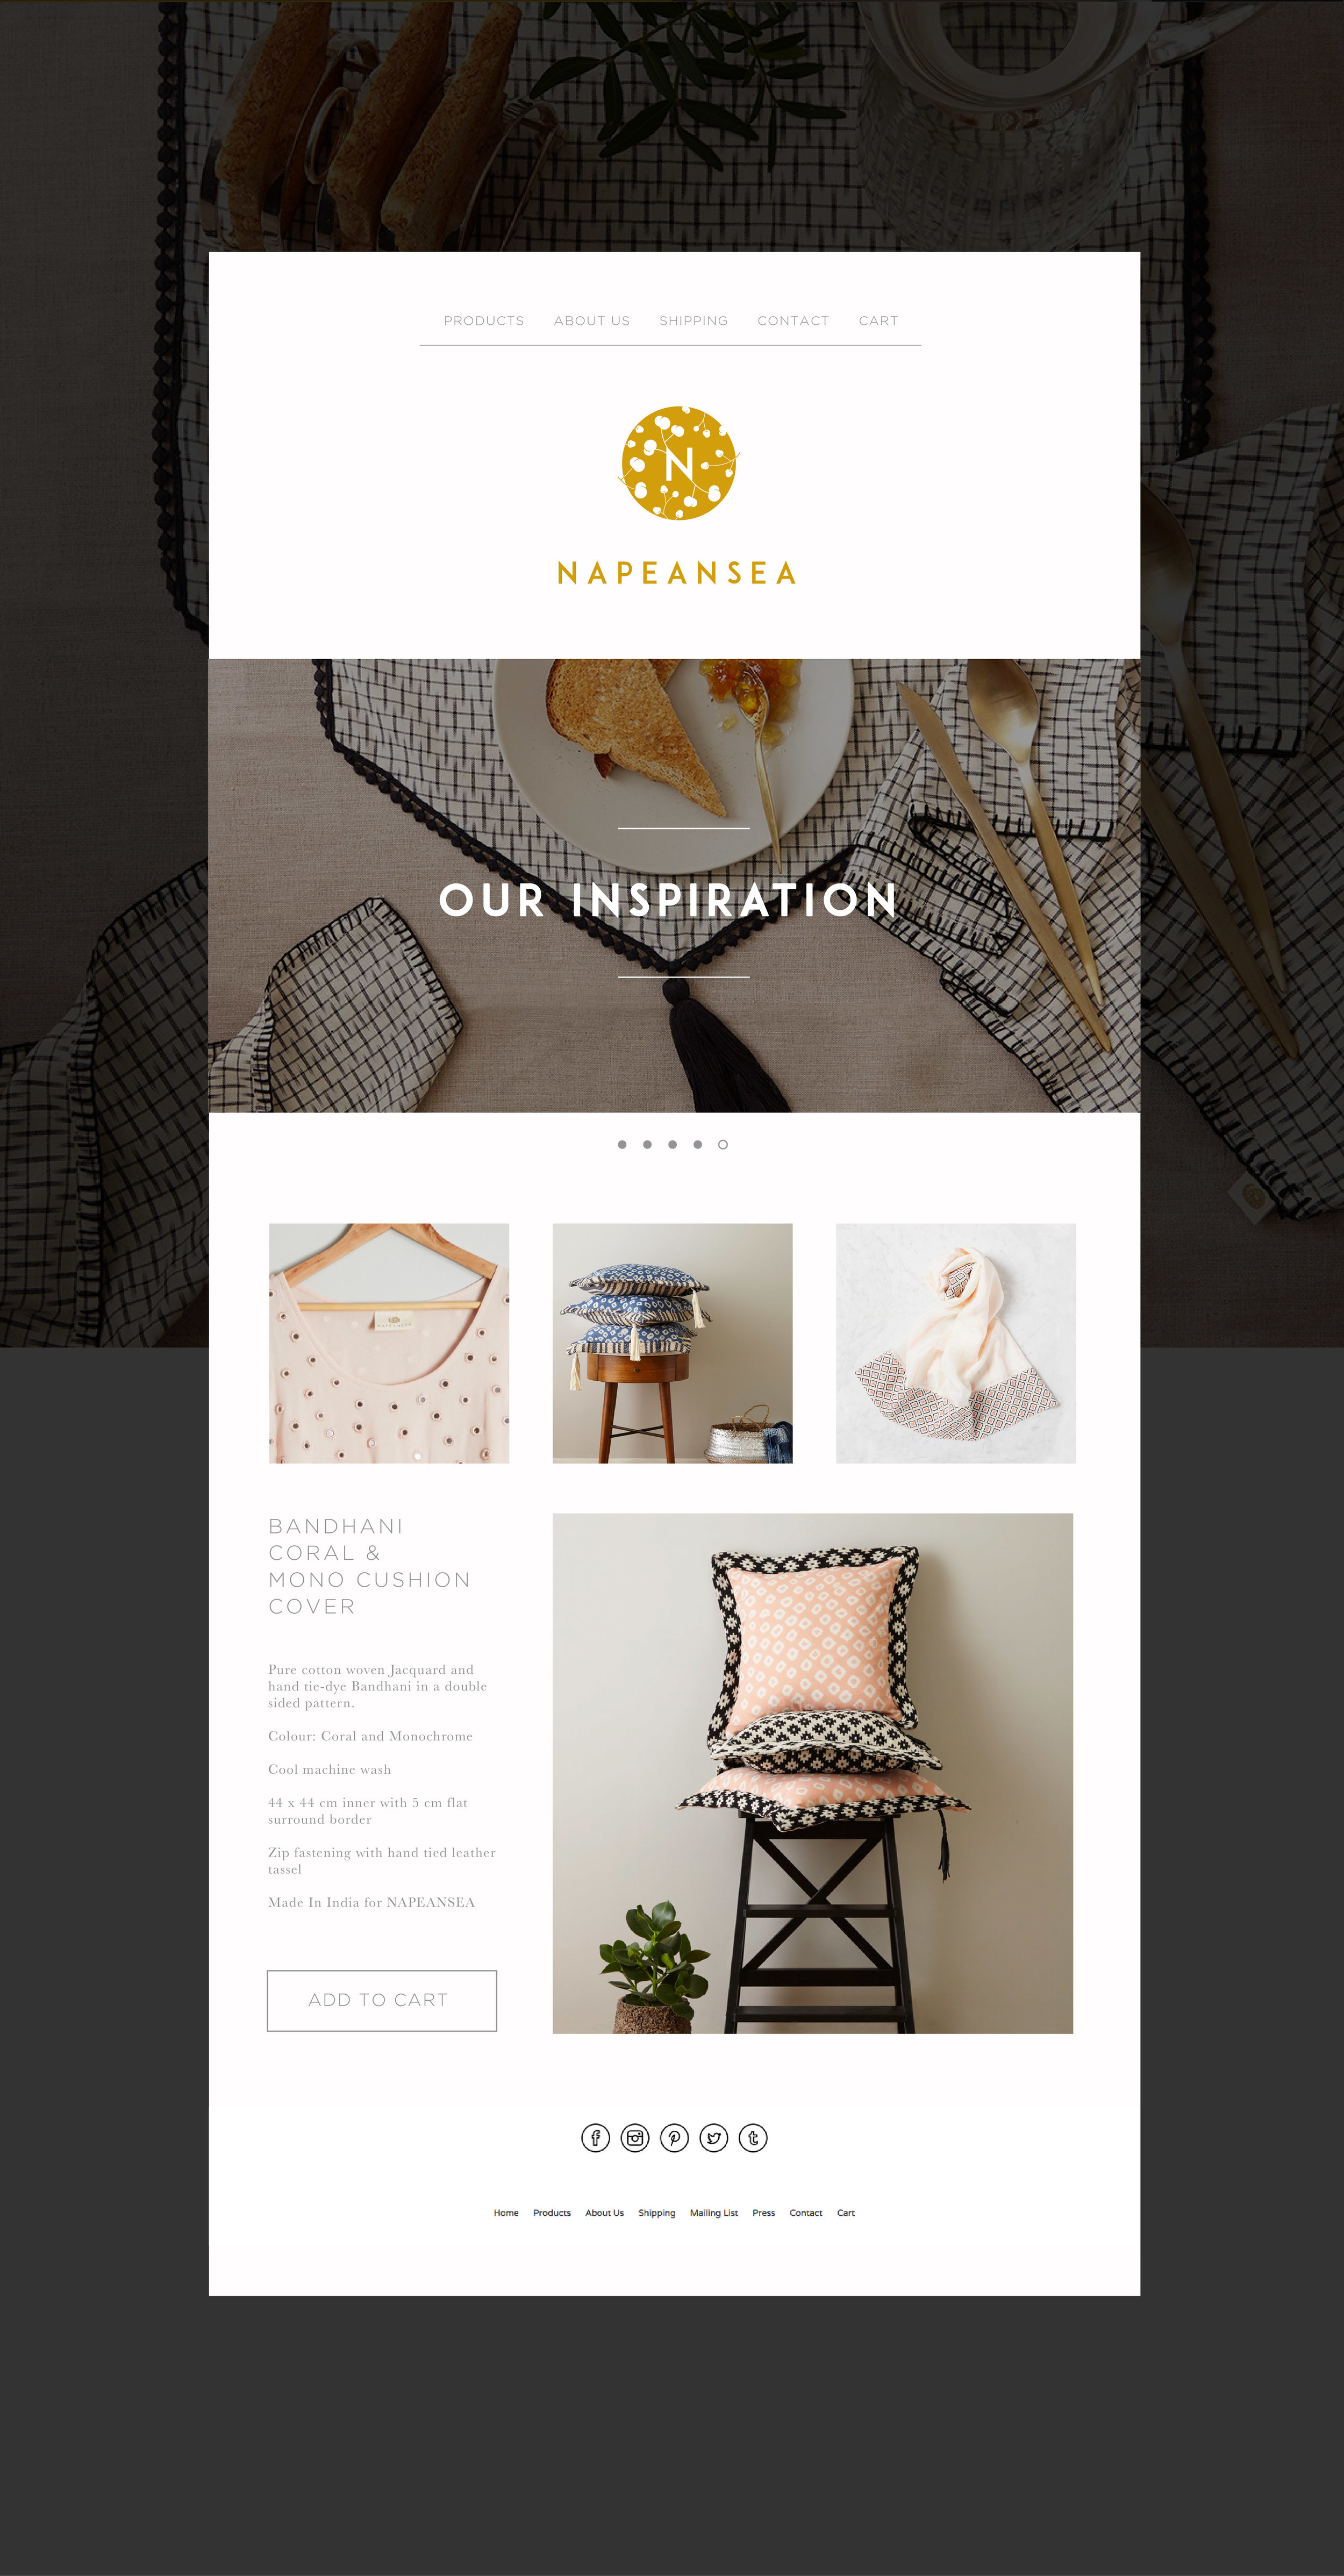 Napeansea_Website Layout-03.jpg